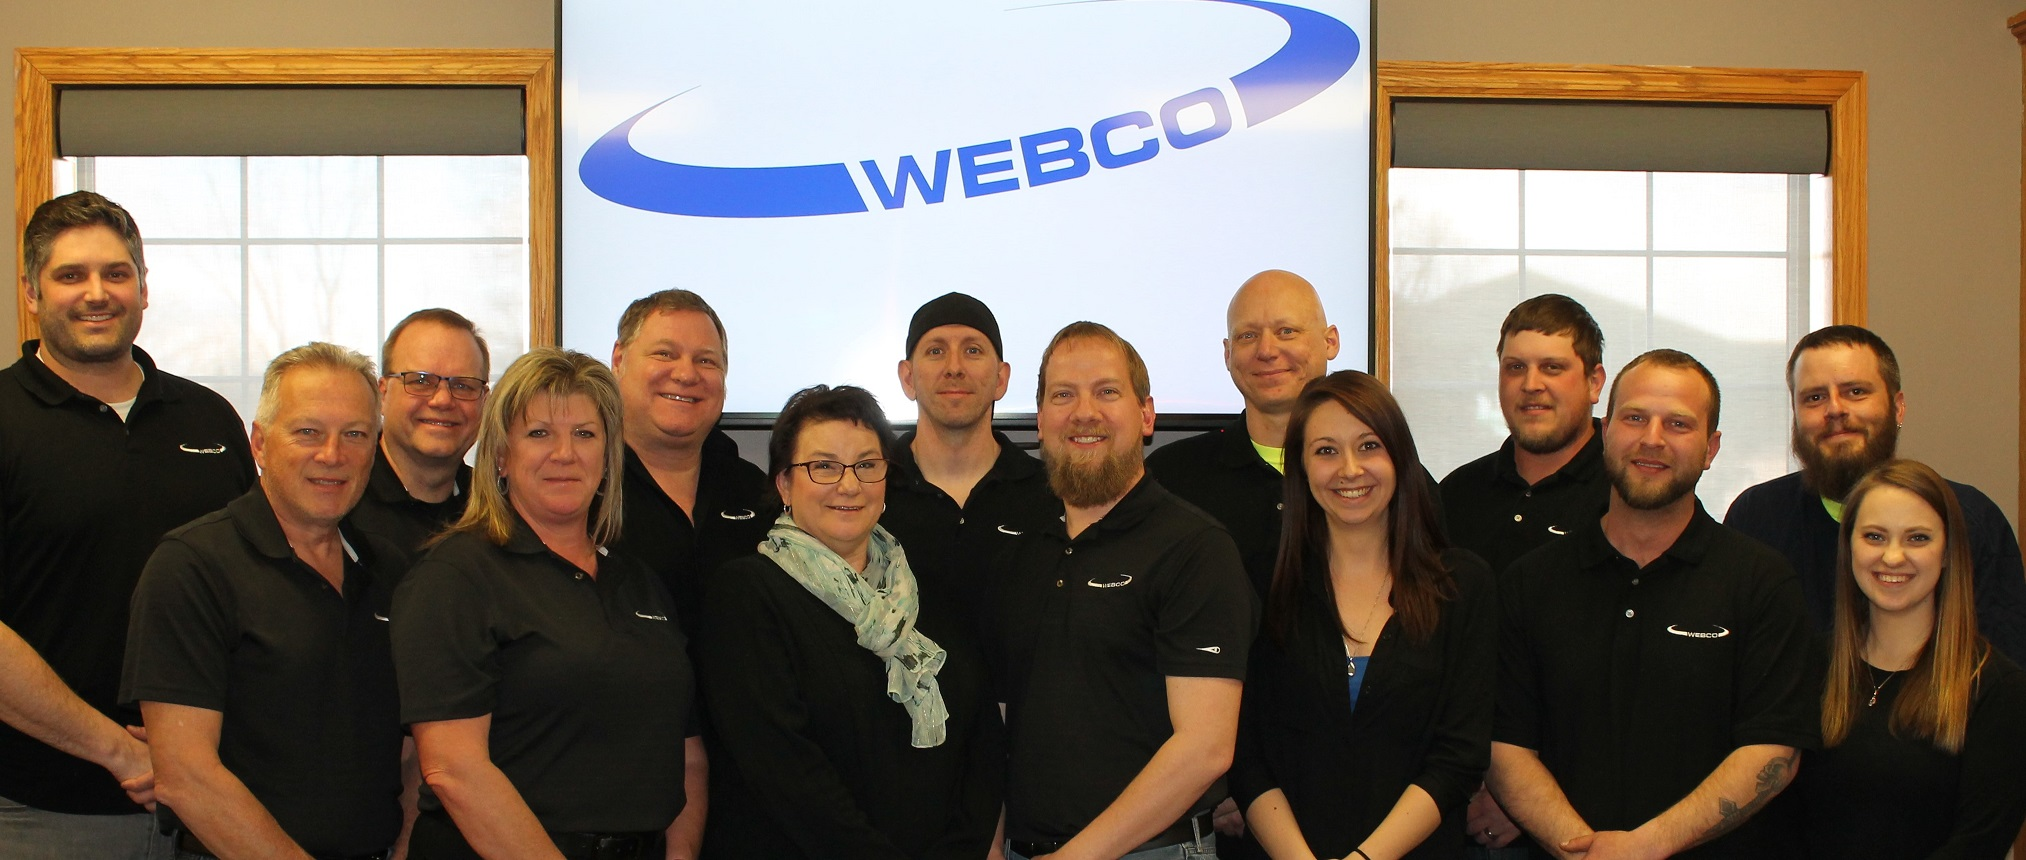 Webco Offers Home Security As Well As Life Safety And